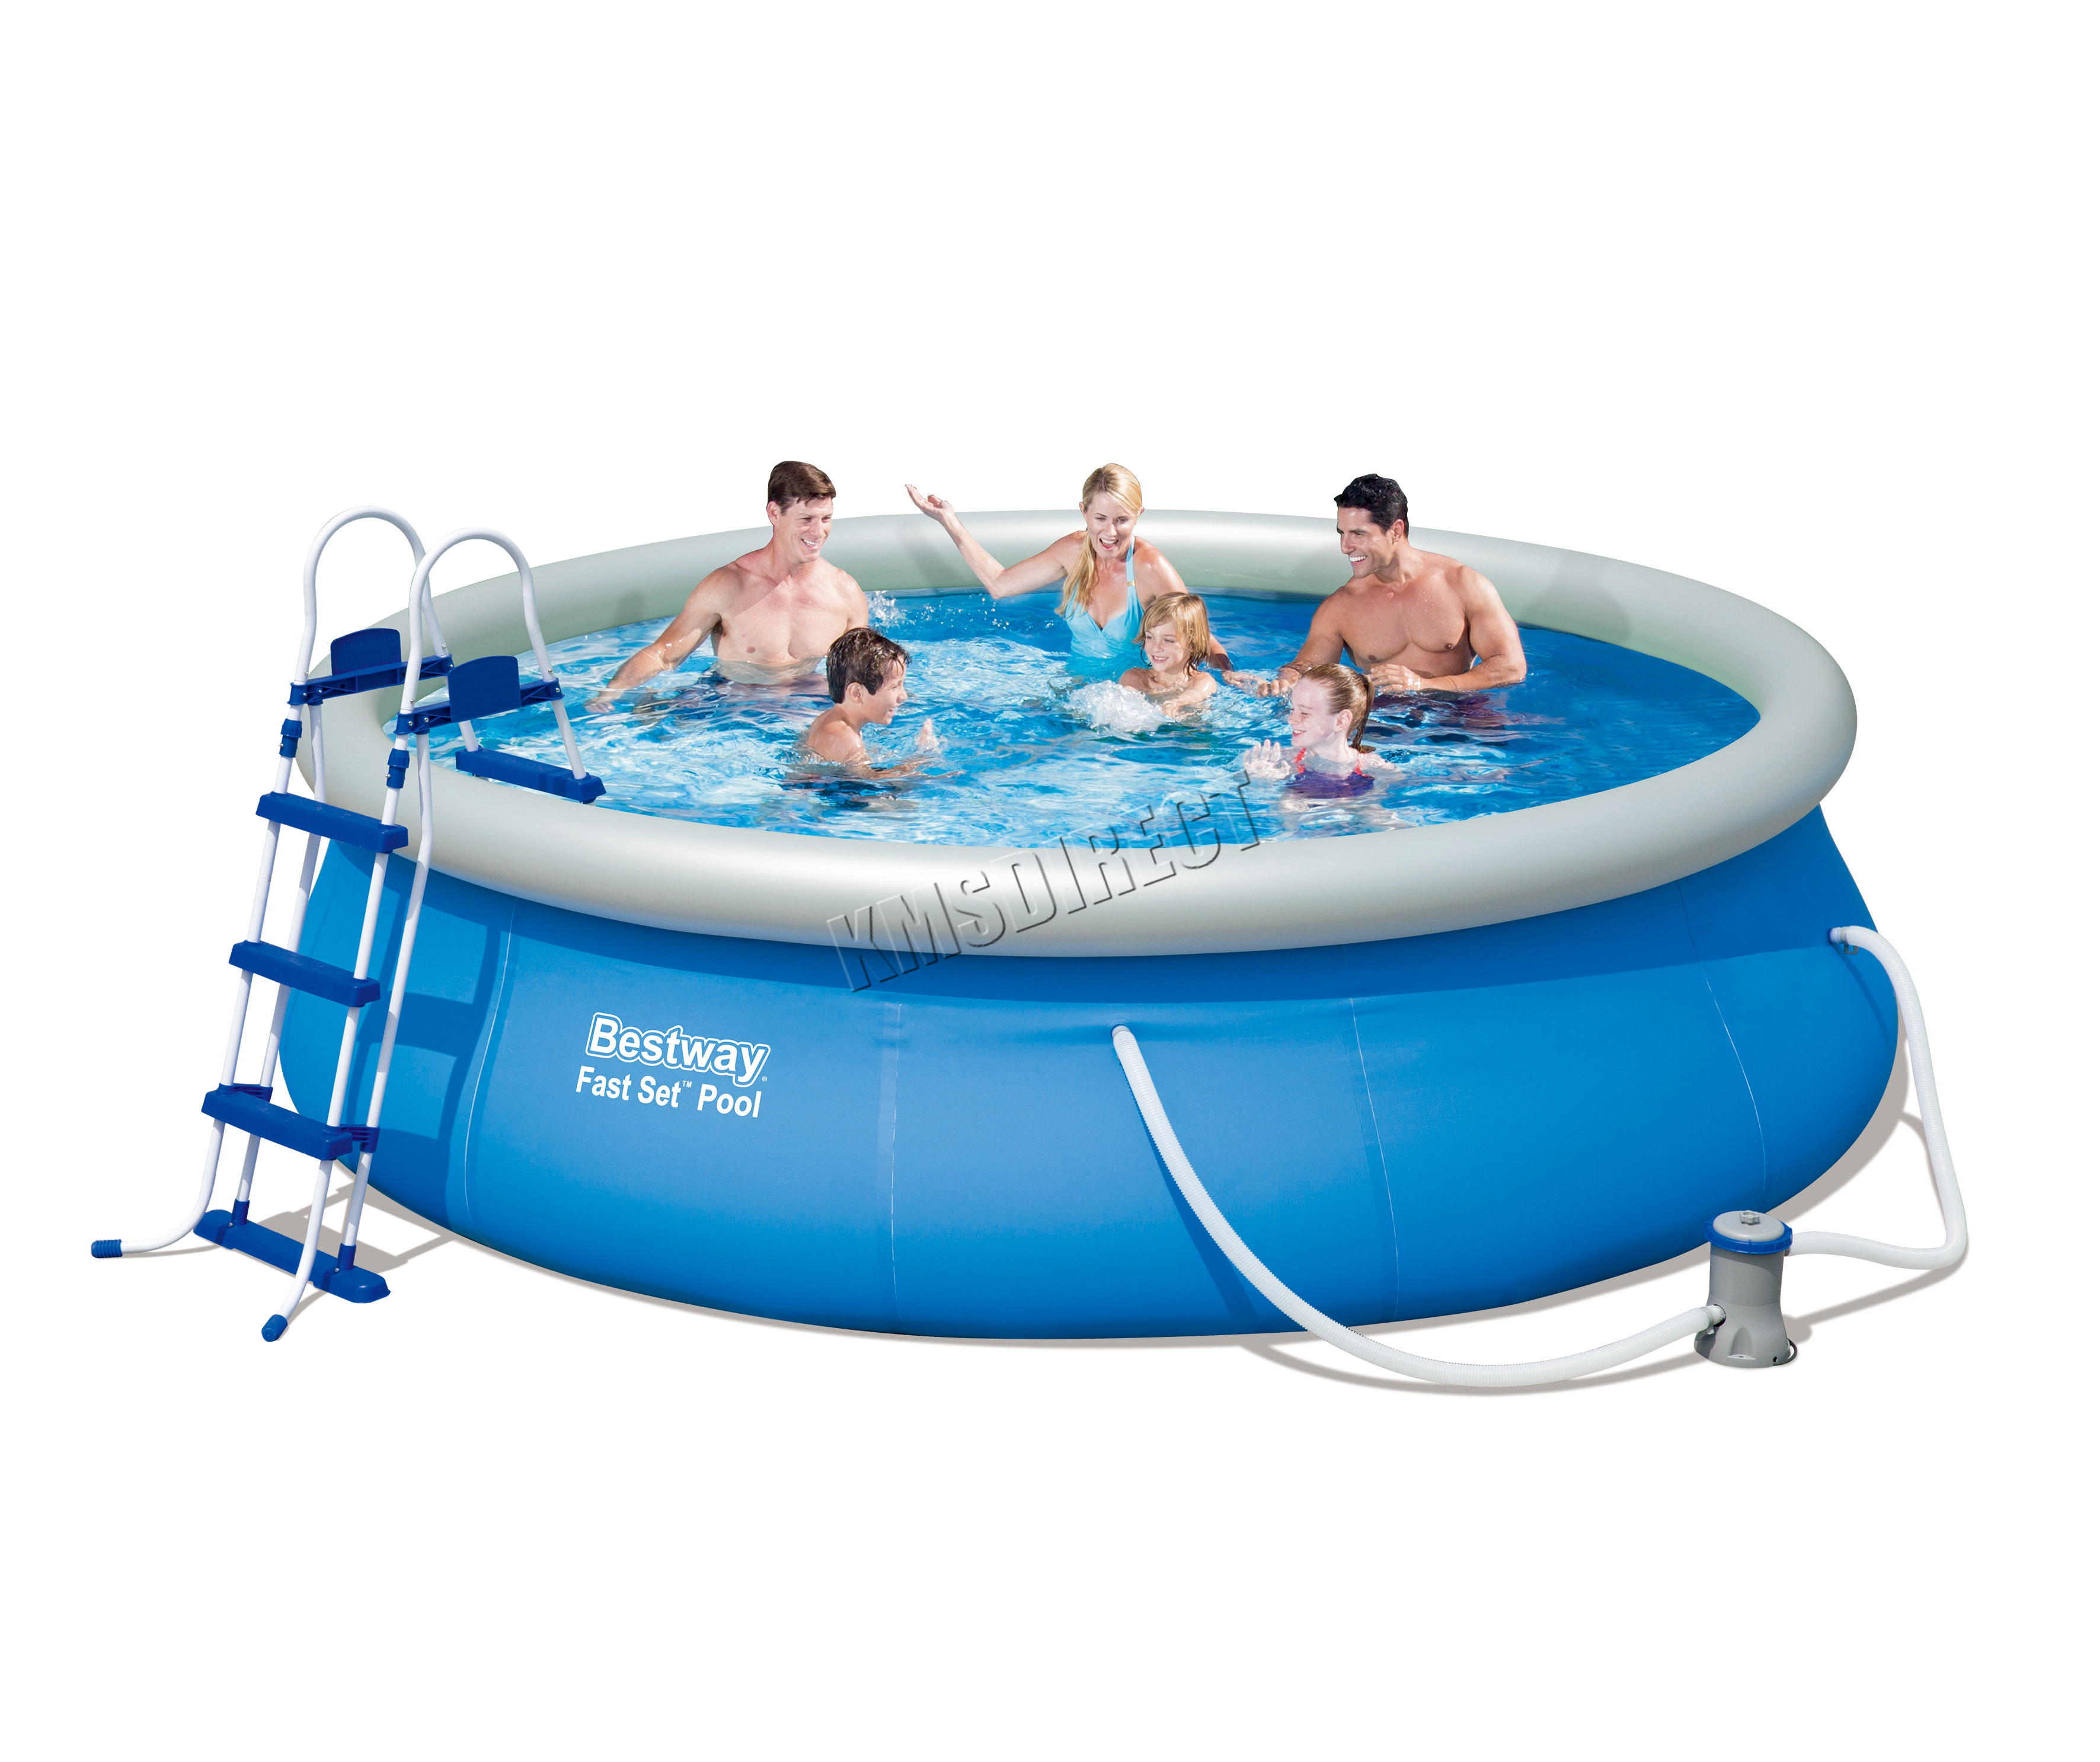 Bestway Fast Set Swimming Pool Round Inflatable 12ft X 36inch With Filter Pump Ebay